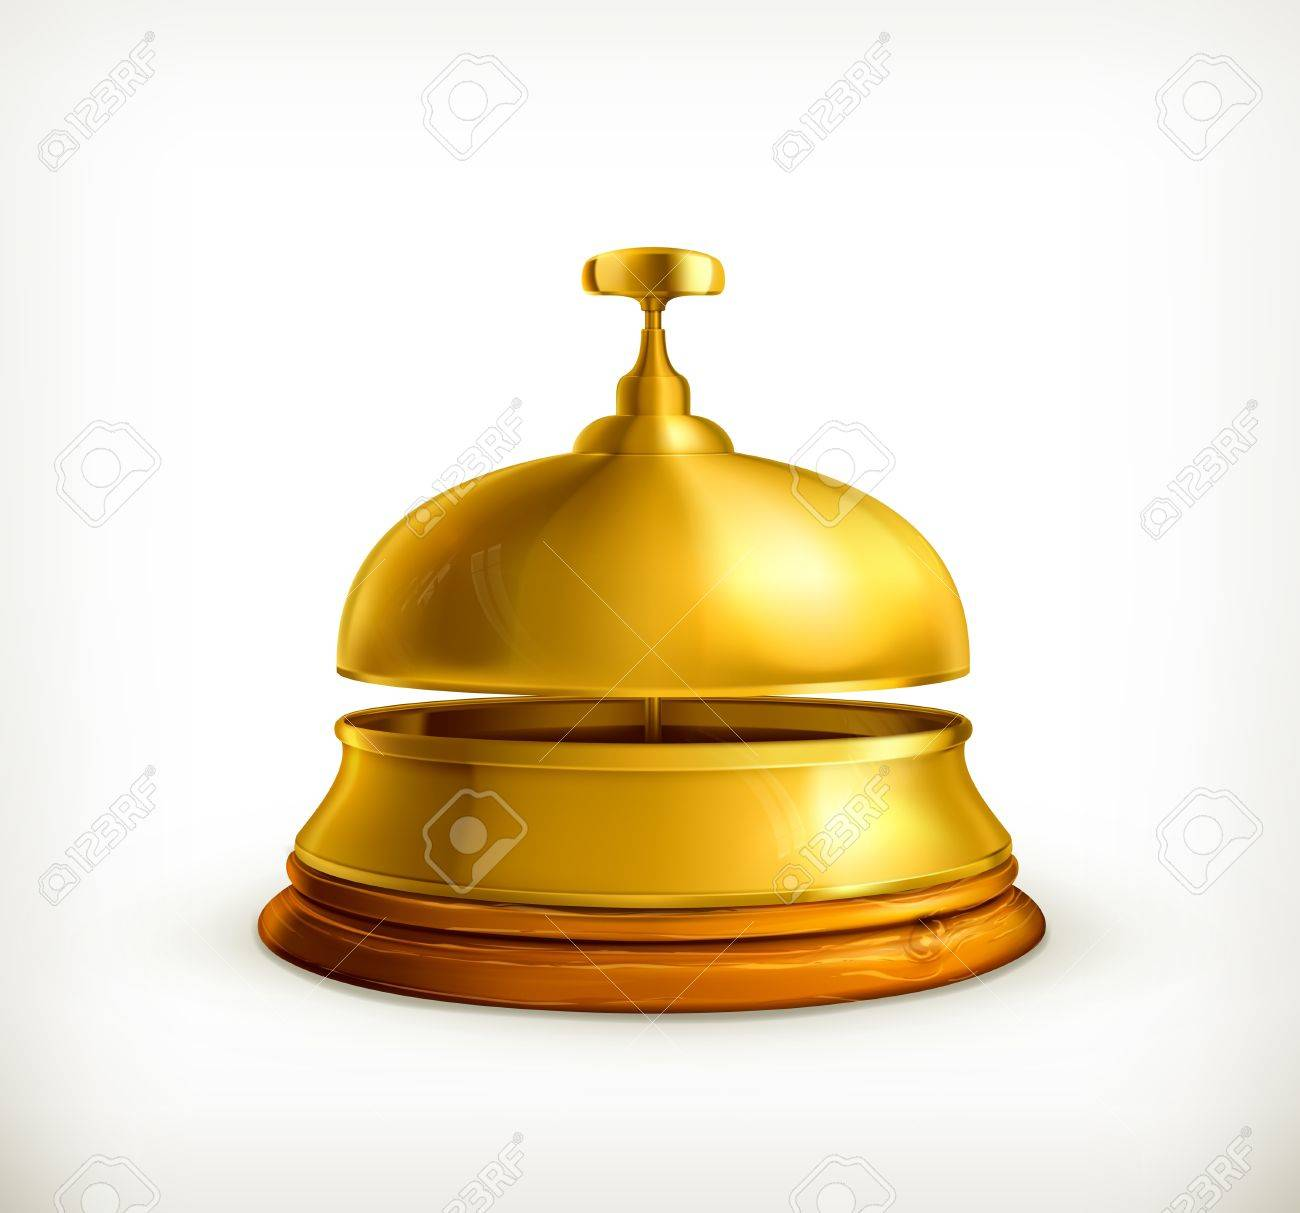 Reception Bell Stock Vector - 13857994